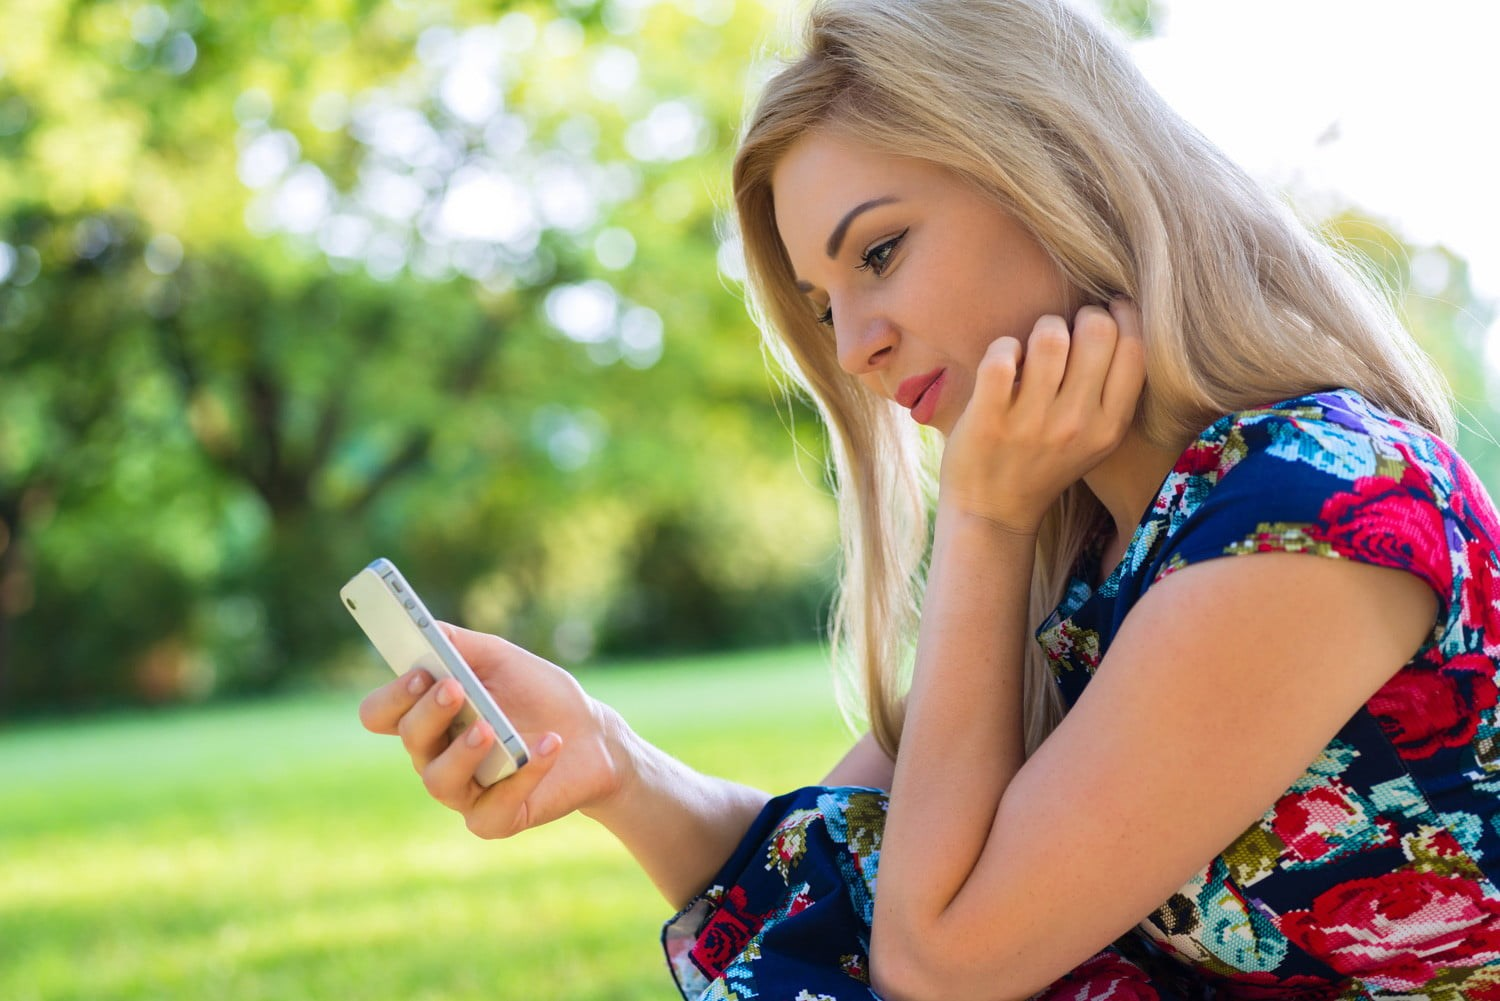 2018s 10 Best Dating Apps To Help You Find That Special Someone